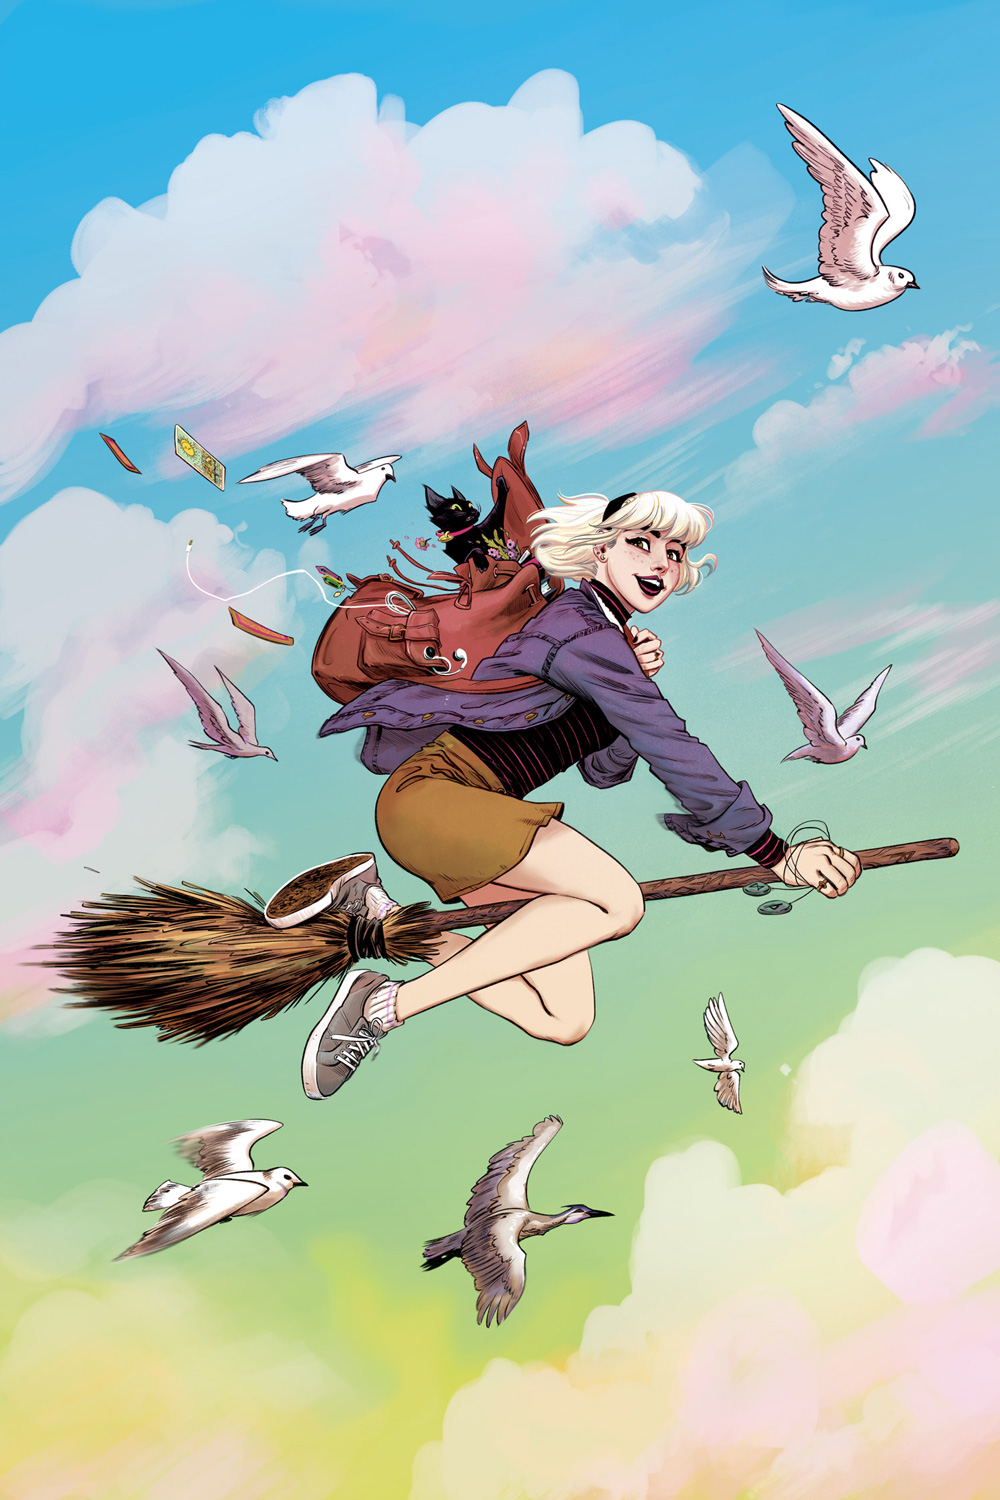 Sabrina the Teenage Witch #1: CVR A Fish